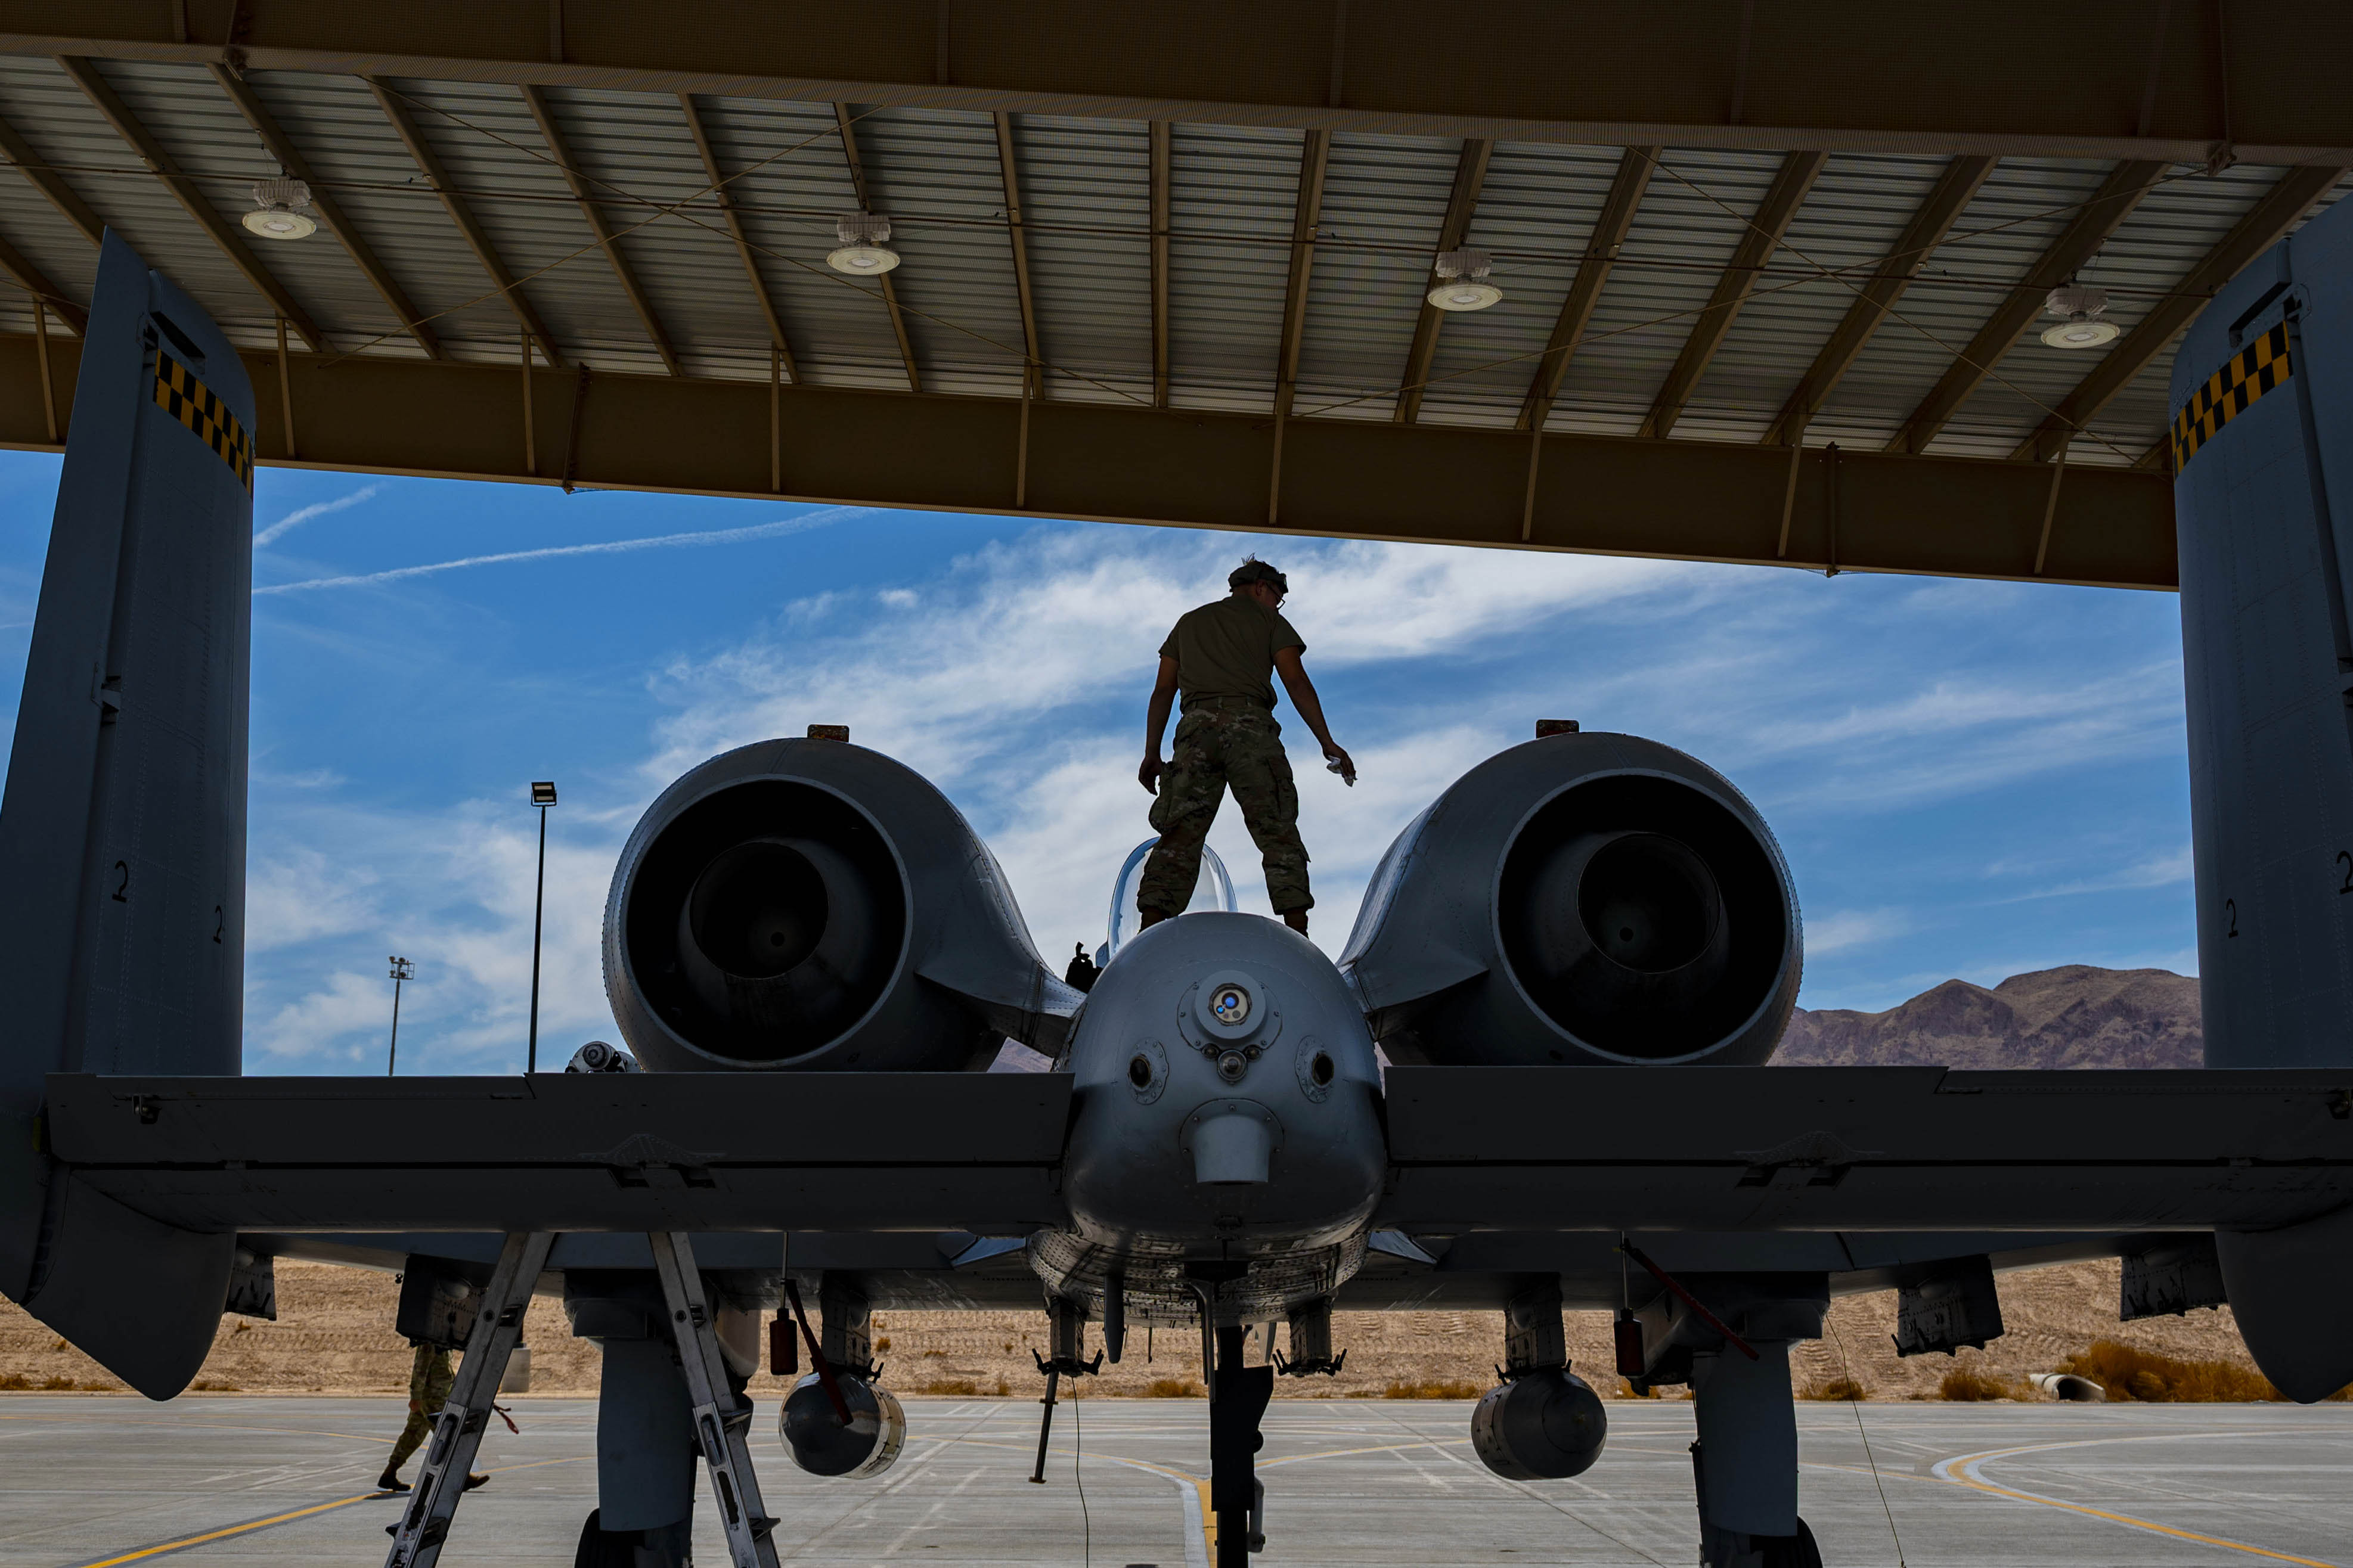 Airman 1st Class Zane Campbell, a tactical aircraft maintainer assigned to the 757th Aircraft Maintenance Squadron, performs maintenance on an A-10 Warthog at Nellis Air Force Base, Nevada, June 26. (Airman 1st Class Zachary Rufus/Air Force)